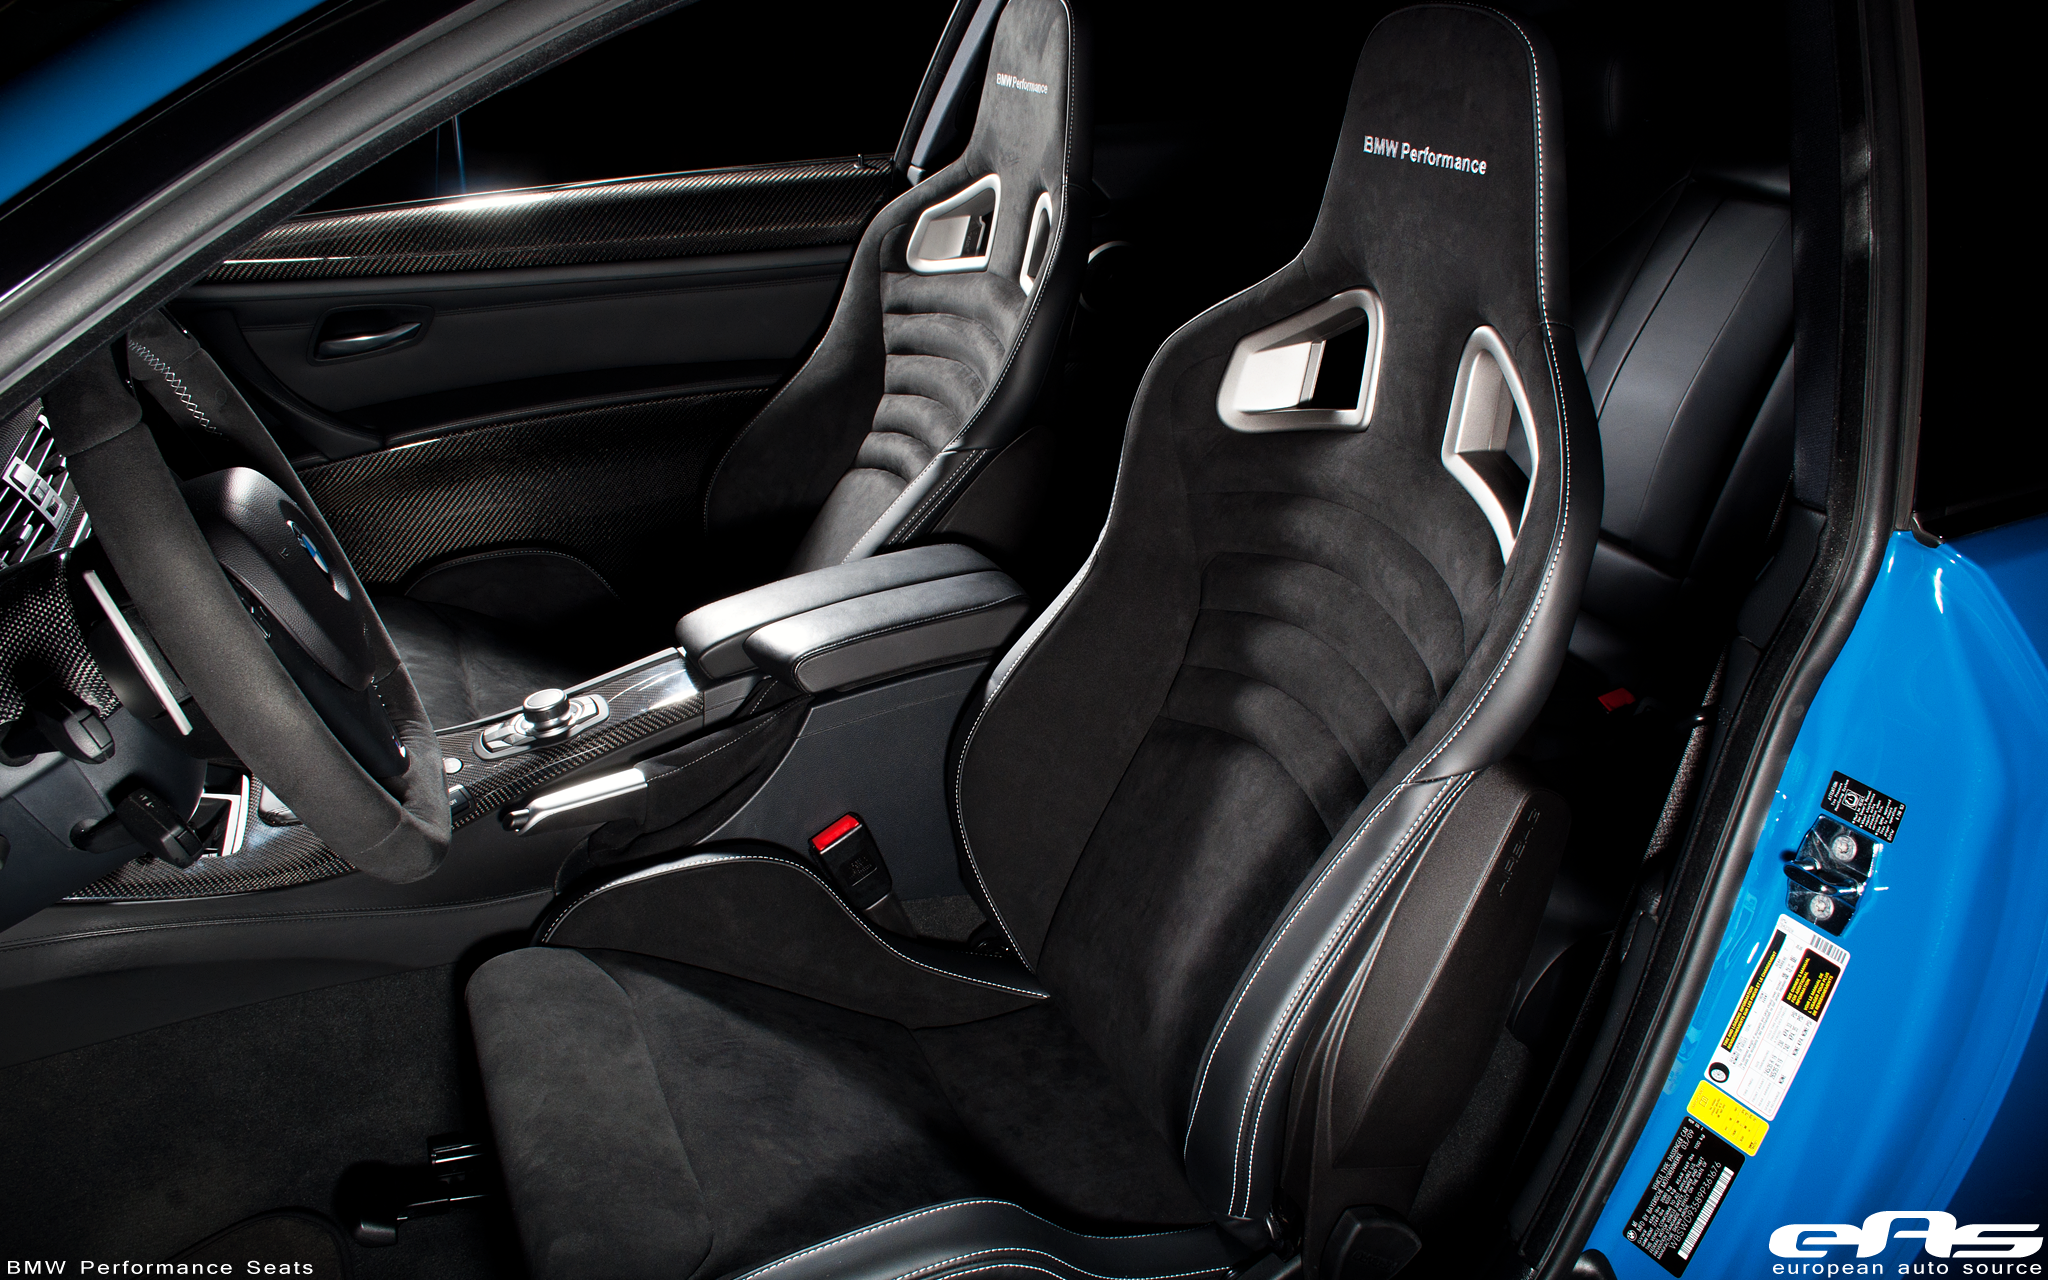 Bmw E92 M Performance >> BMW Performance Seats Installed in a Laguna Seca Blue M3 | BMW Performance Parts & Services